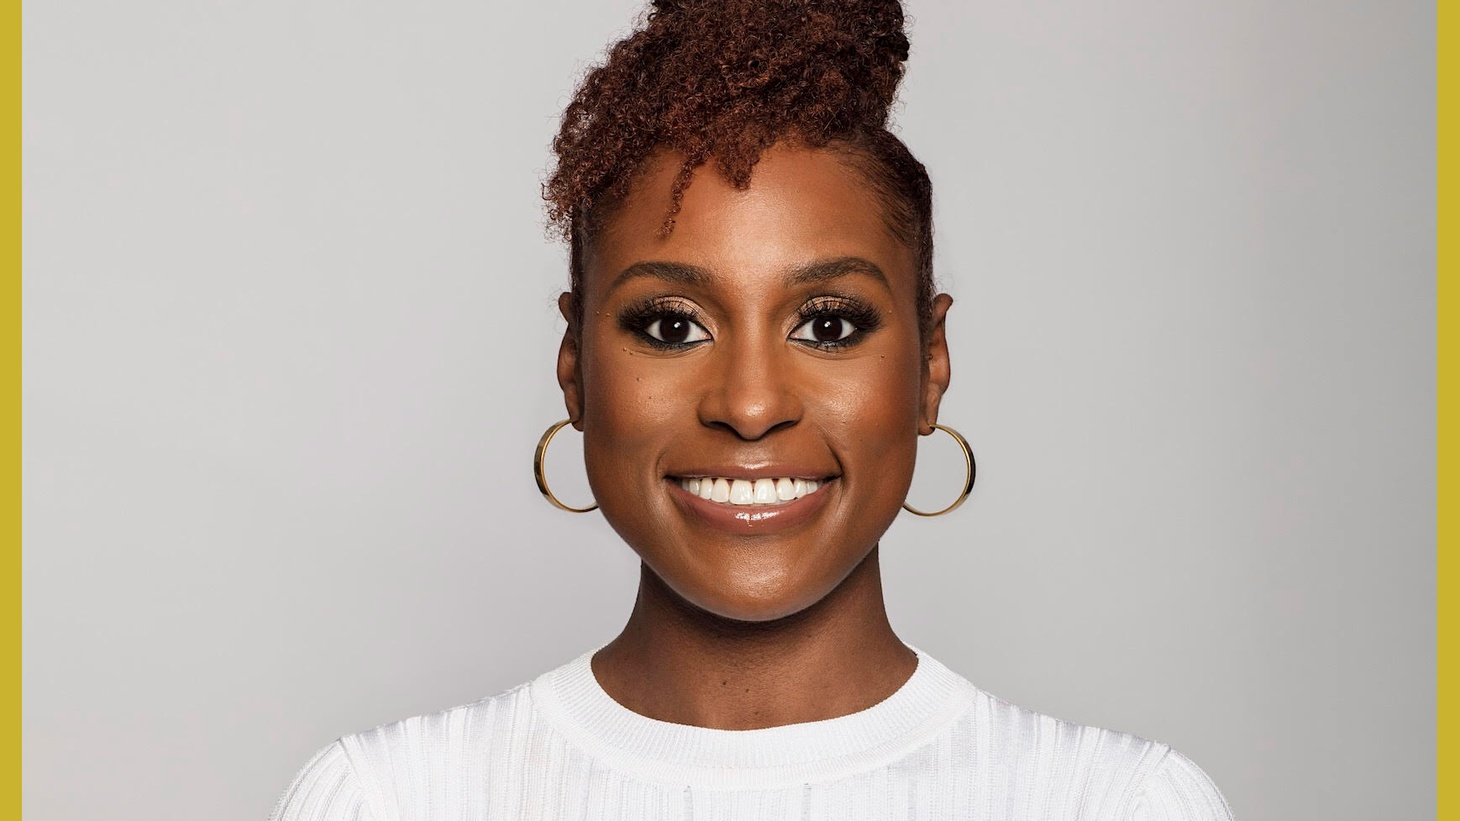 Justin sits down with Issa Rae, the original Awkward Black Girl, to talk about what happens after your dreams come true, and what it's like to be expected to create work that covers the entire black experience.